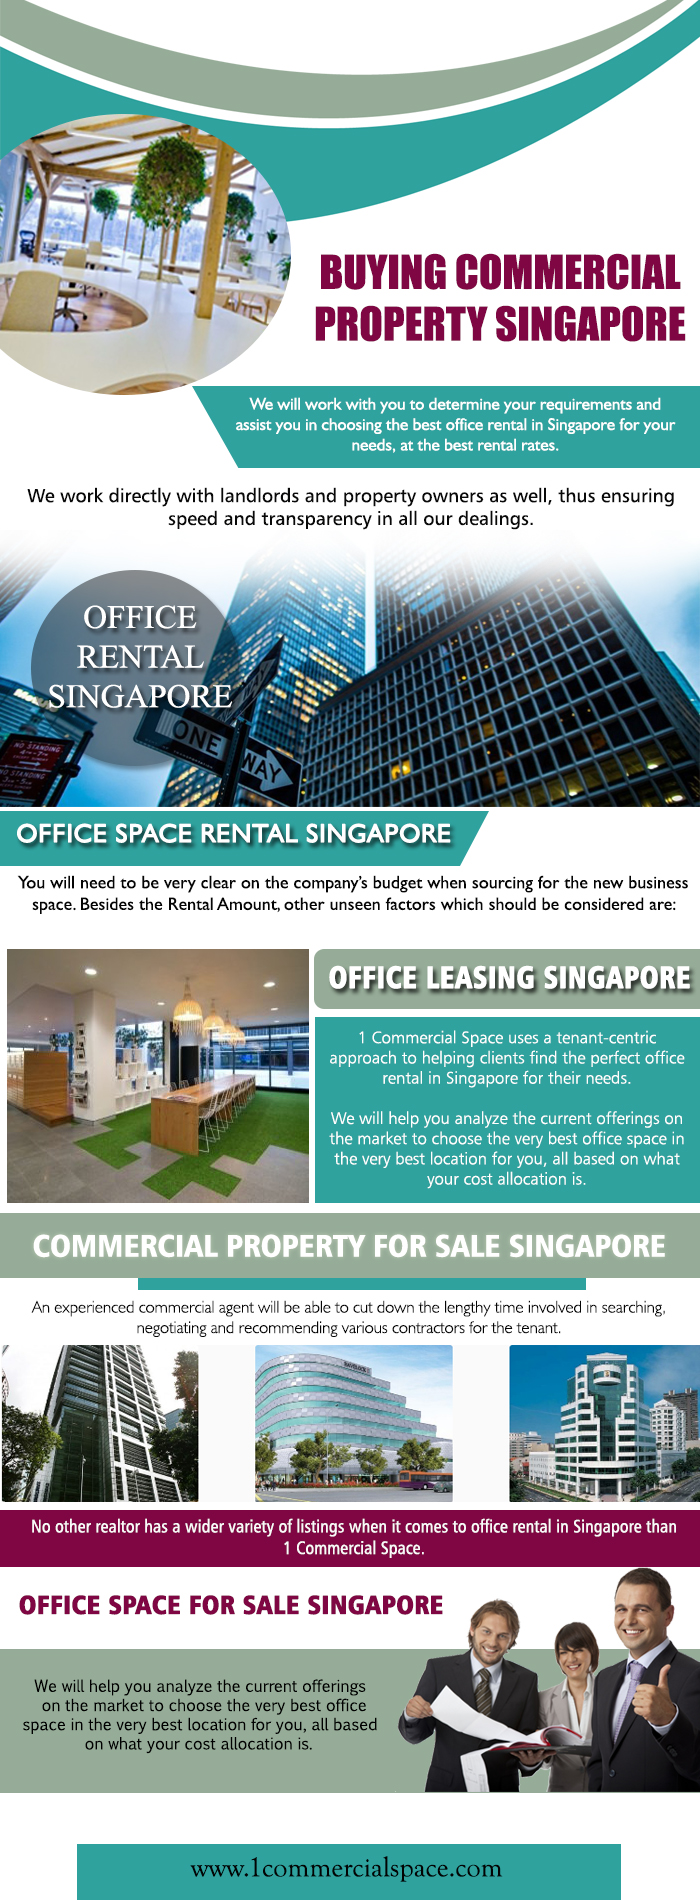 Tripleone Somerset Office Rental